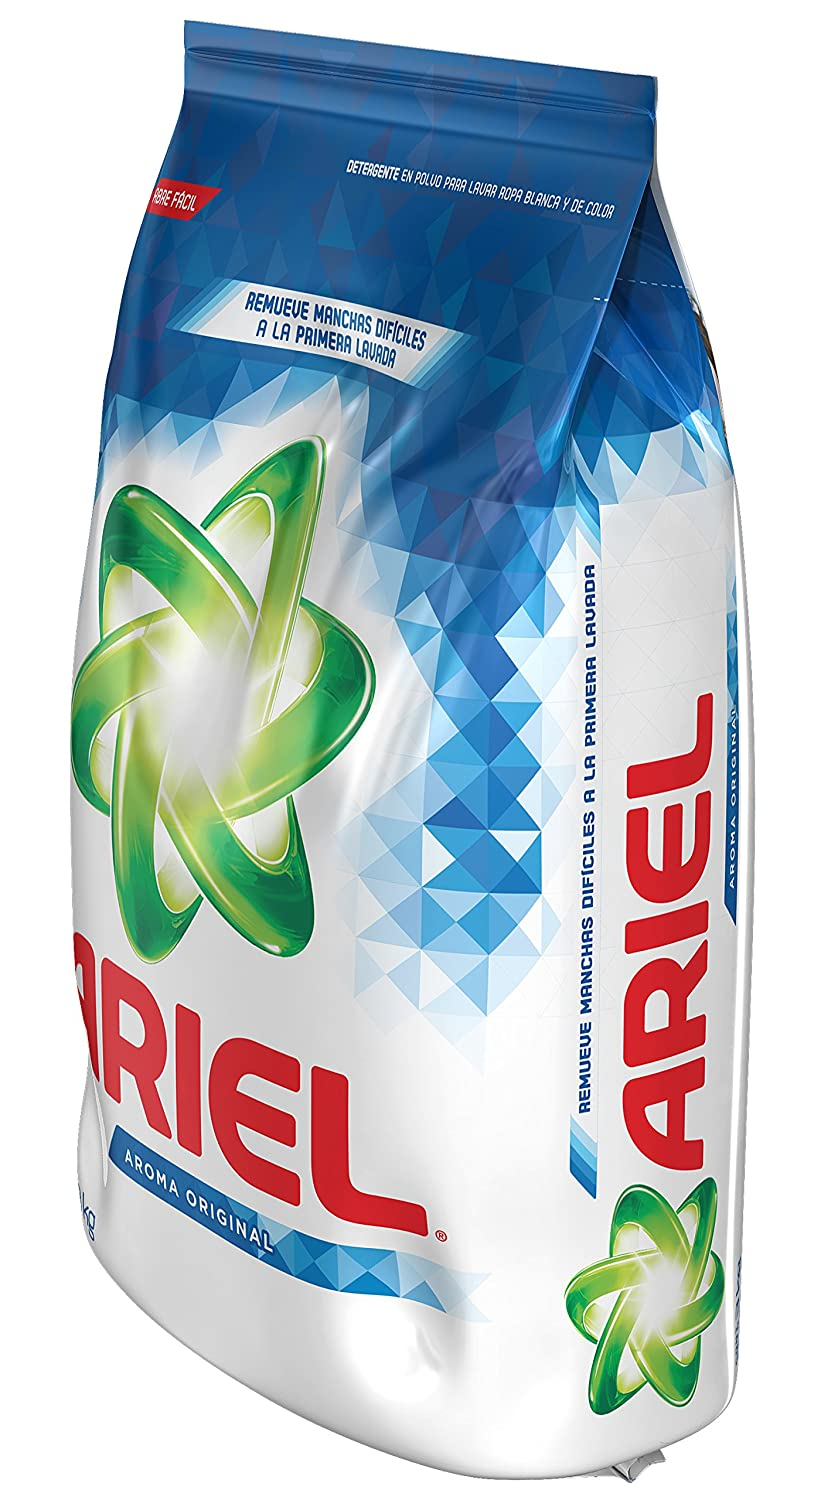 Amazon.com: Ariel detergent 5 kg: Health & Personal Care